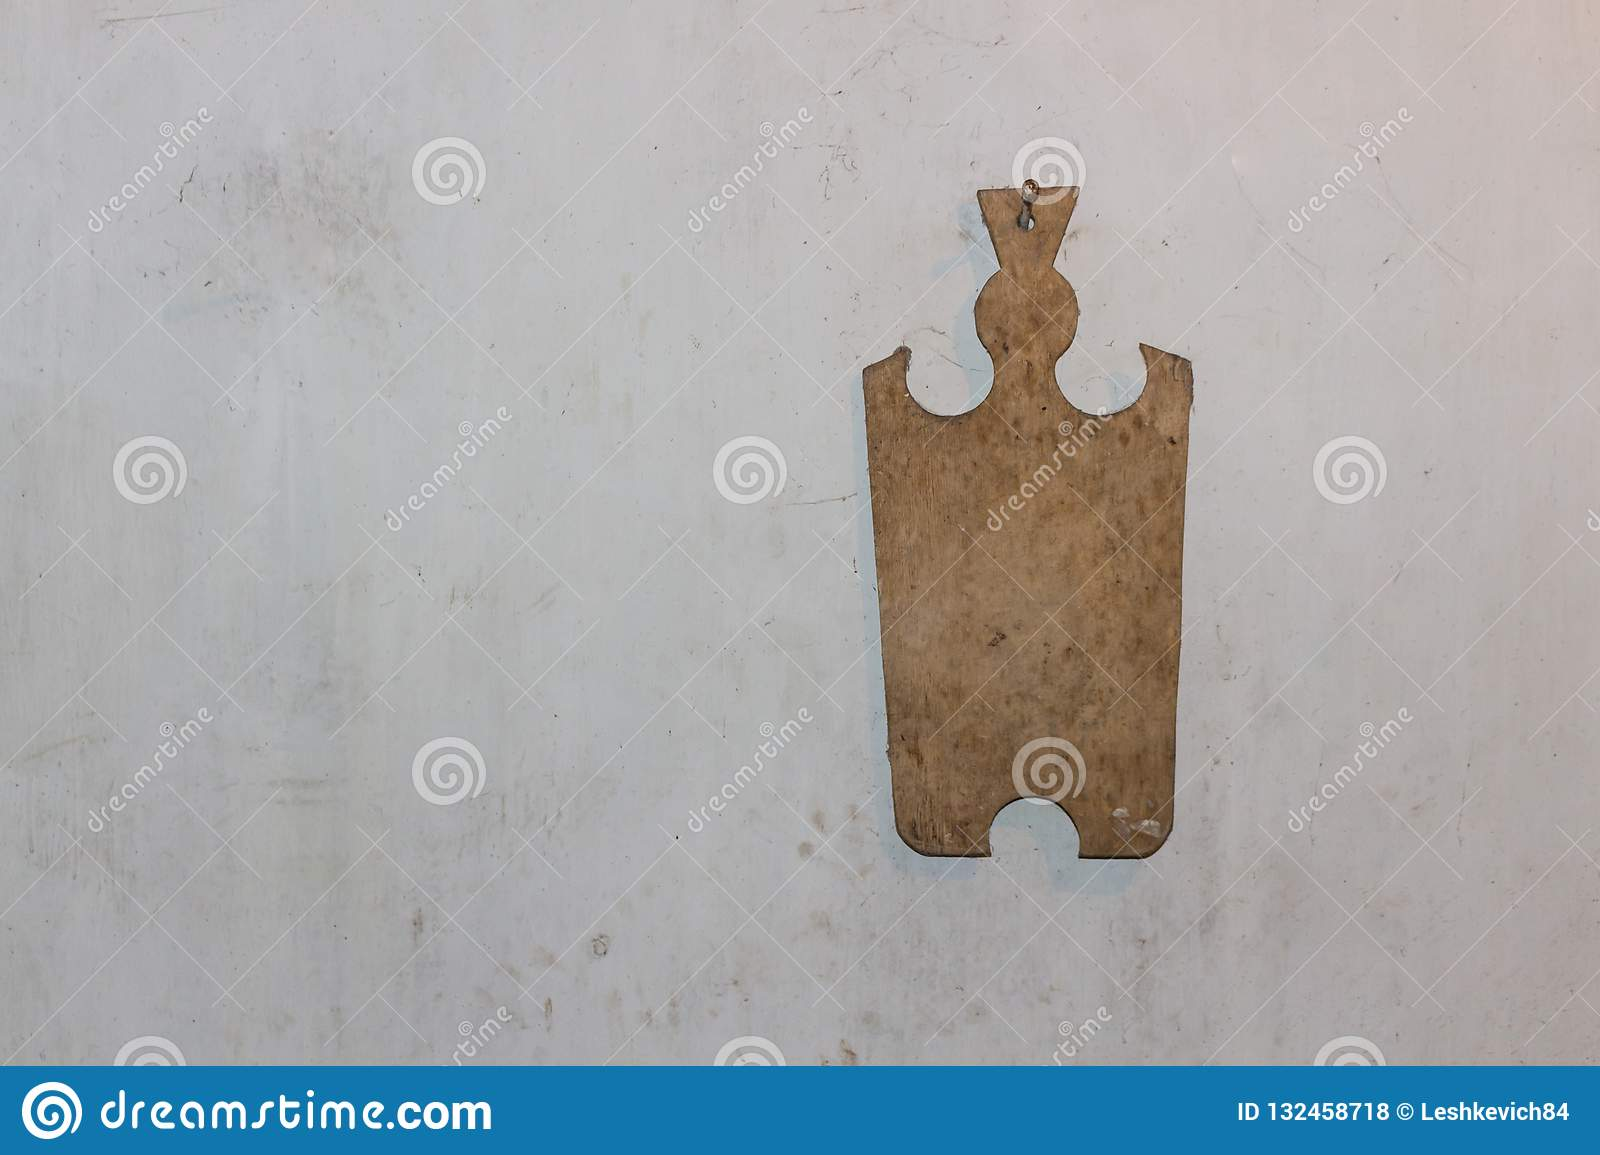 Old Cutting Board Hanging On The Wall Background Stock Photo Image Of Texture Object 132458718